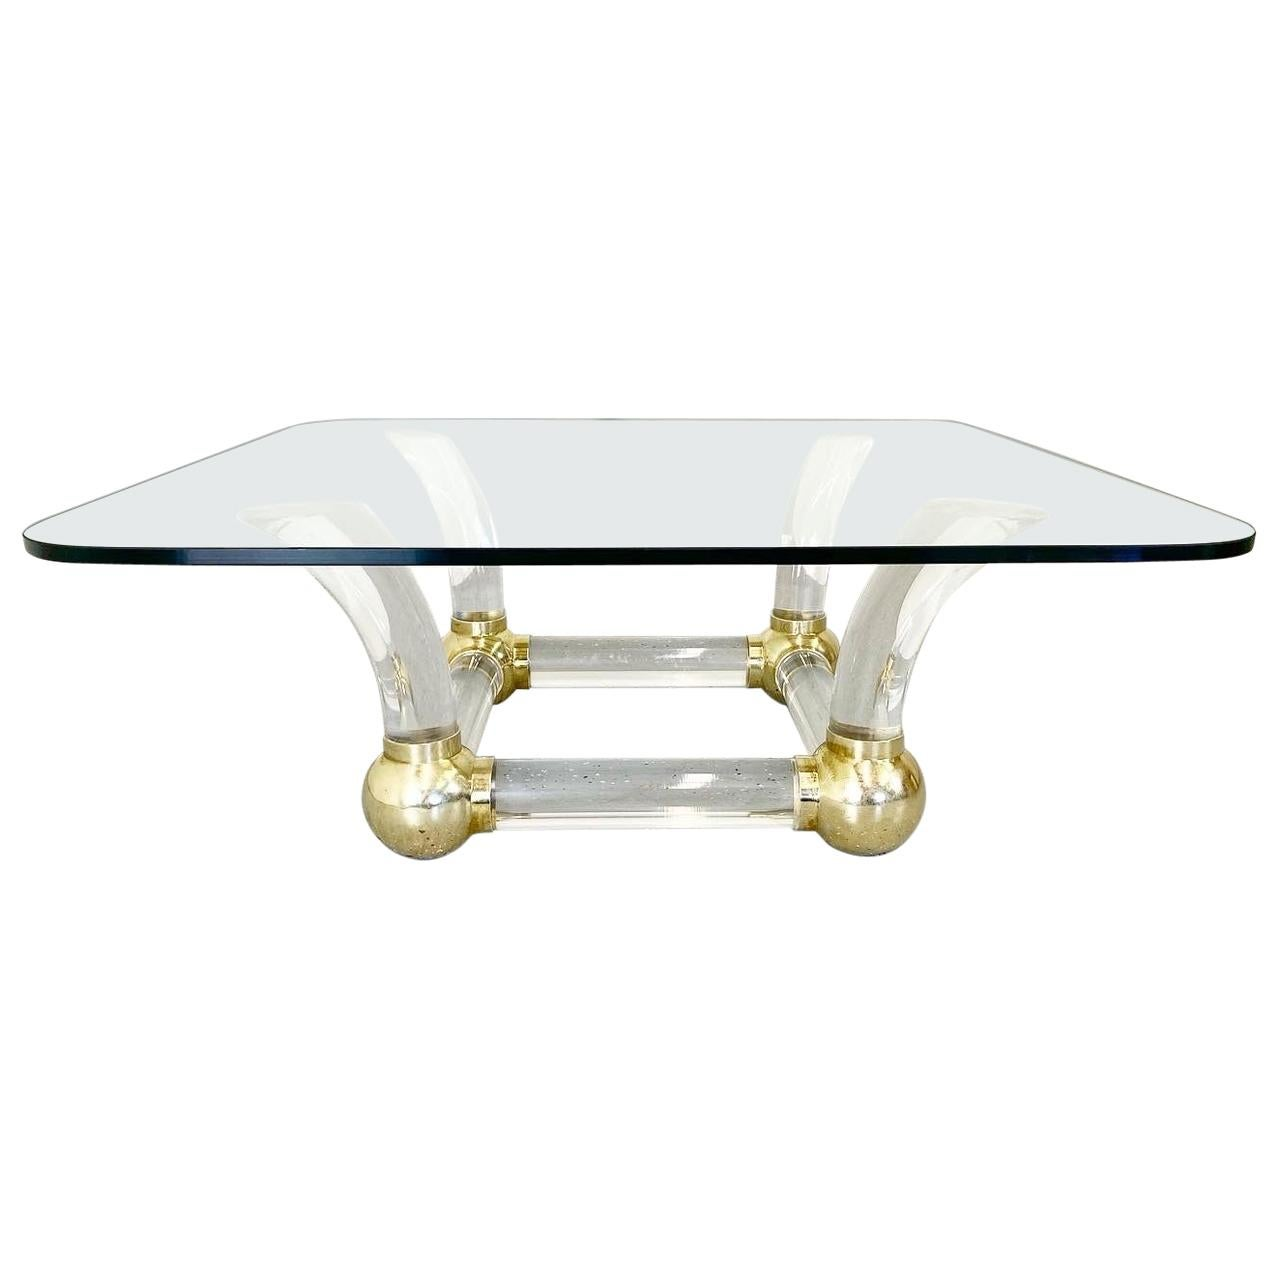 1980s Hollywood Regency Lucite and Brass Karl Springer Style Cocktail Table